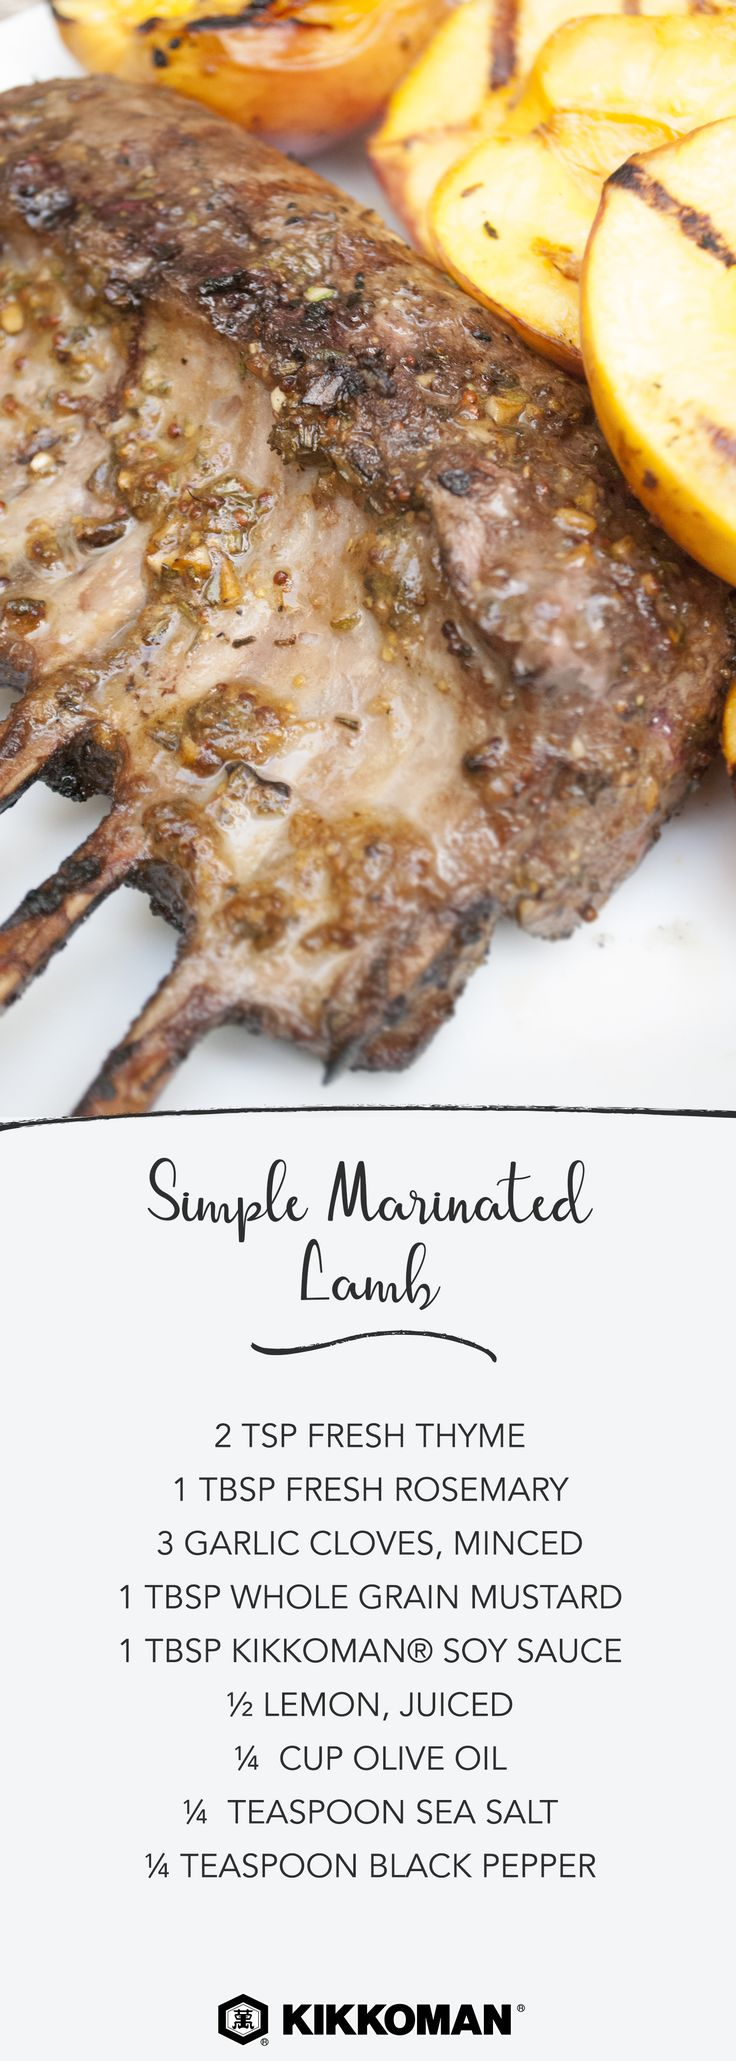 Simple Marinated Lamb   With just 10 minutes of prep, marinate lamb overnight in a mixture of lemon juice, mustard, Kikkoman®️ Soy Sauce, plus fresh herbs and spices. This easy grilled lamb pairs perfectly with grilled peaches, green salad, or oven-roasted potatoes.   Check out KikkomanUSA.com for a huge collection of grilling recipes and side dishes.